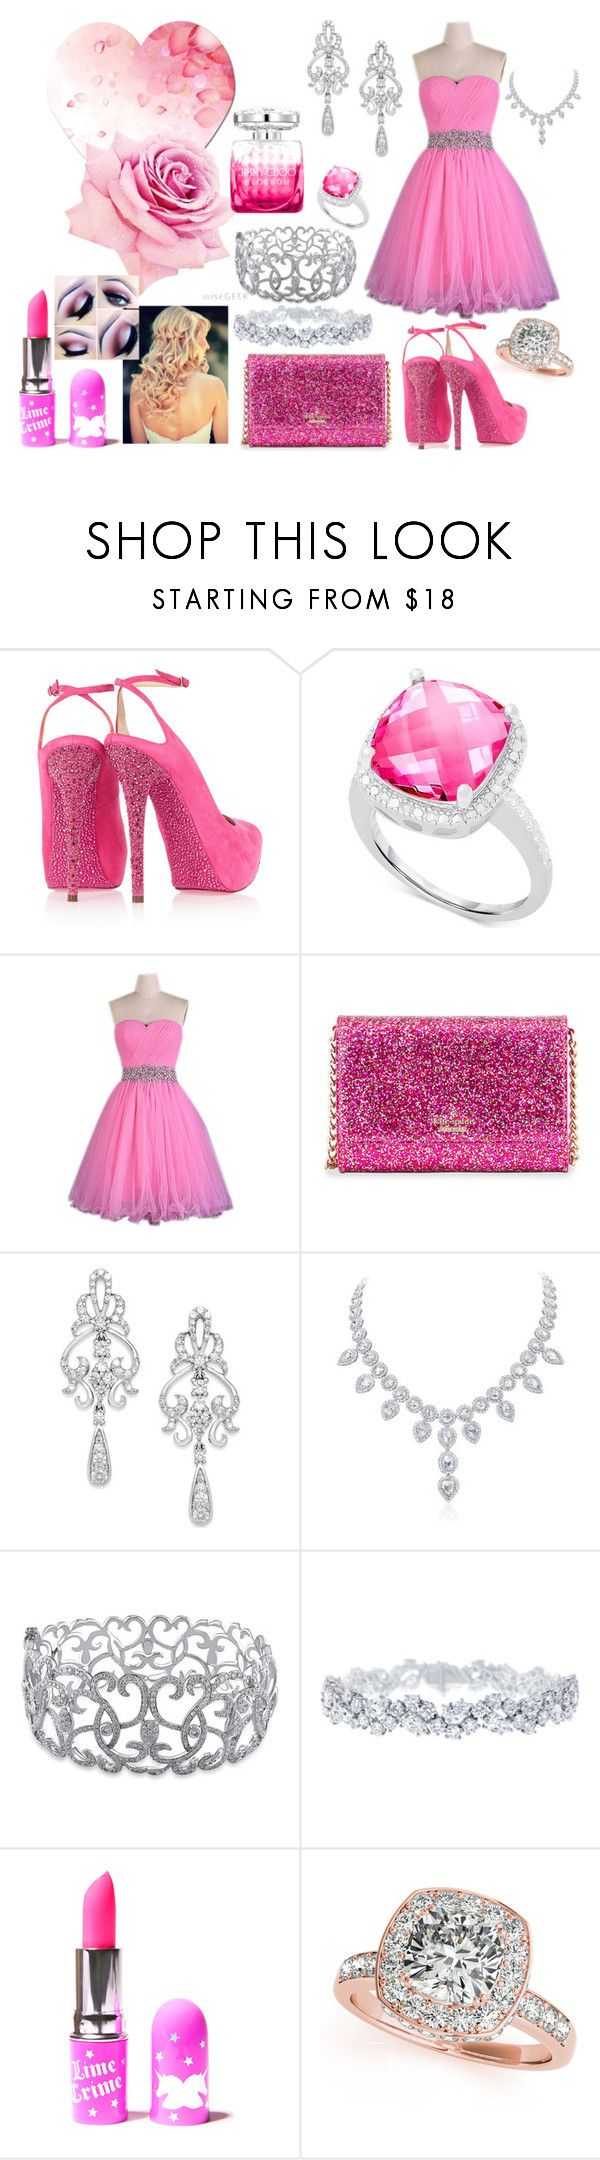 """Pretty inPINK For my Date With Sam Tonight"" by sgraham262 ❤ liked on Polyvore featuring Jimmy Choo, Victoria Townsend, Kate Spade, Wrapped In Love, Ice, Harry Winston, Lime Crime and Allurez"